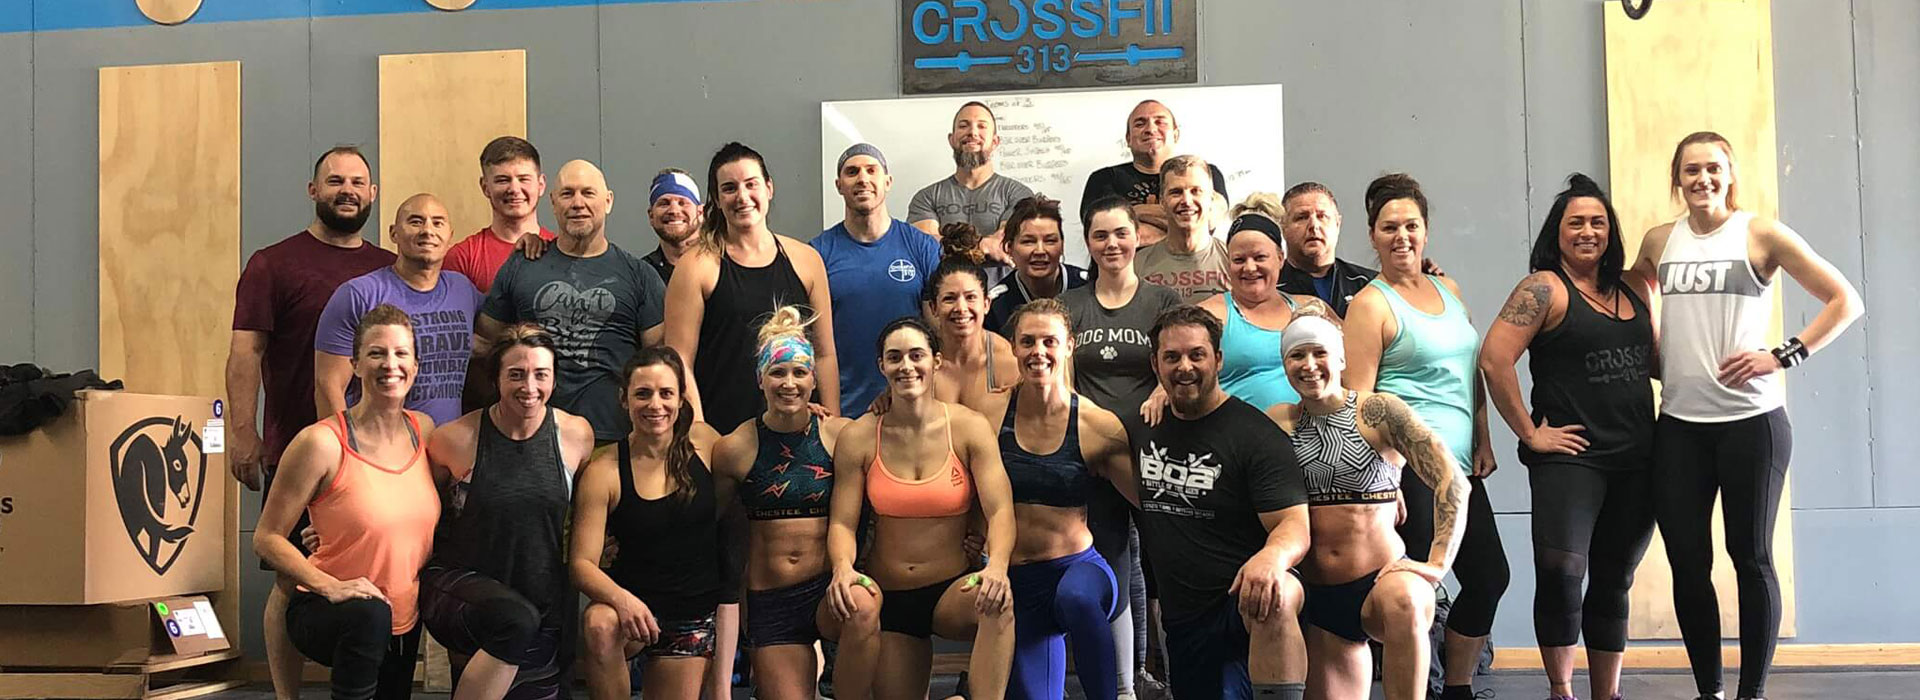 Workout Gym in Burleson TX, Workout Gym near South Fort Worth TX, Workout Gym near Crowley TX, Workout Gym near Joshua TX, Workout Gym near Mansfield TX